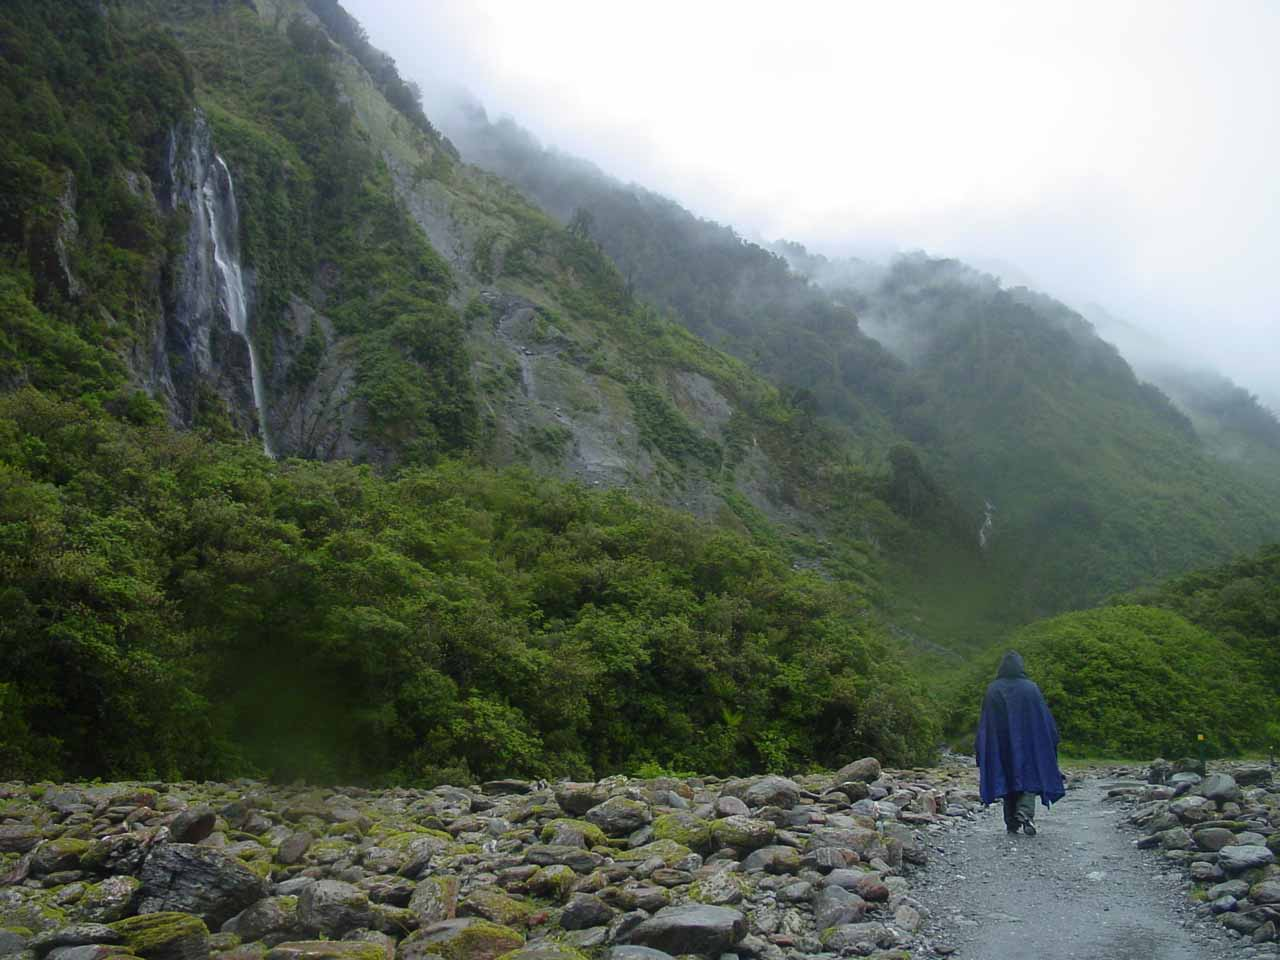 Julie making her way back from the Franz Josef Glacier in the rain